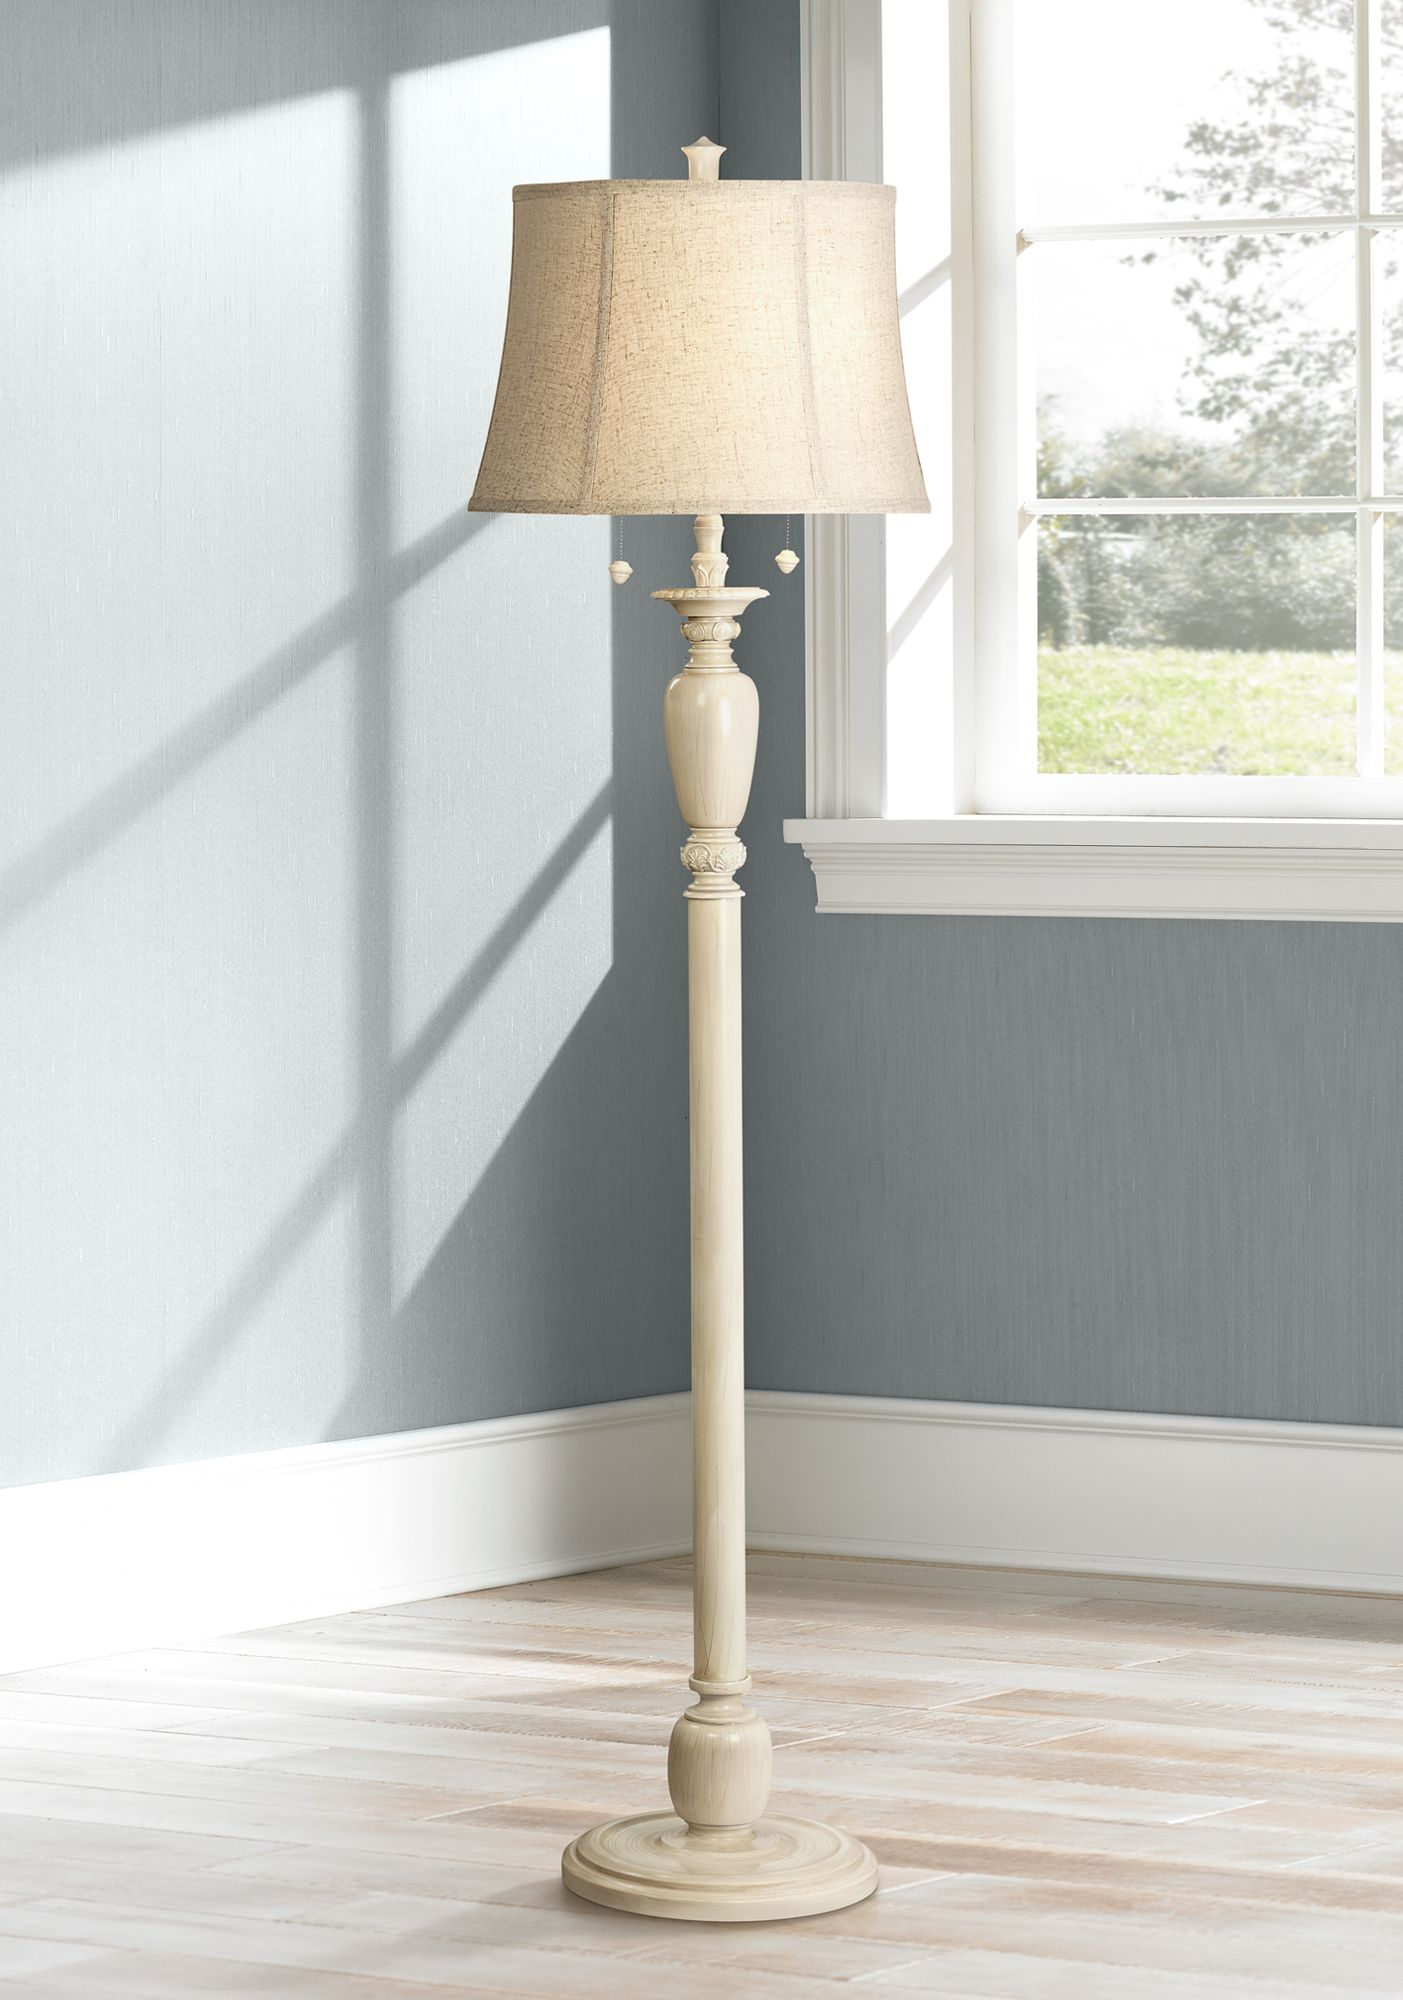 Wonderful Lara Ivory Candlestick Vintage Chic Floor Lamp